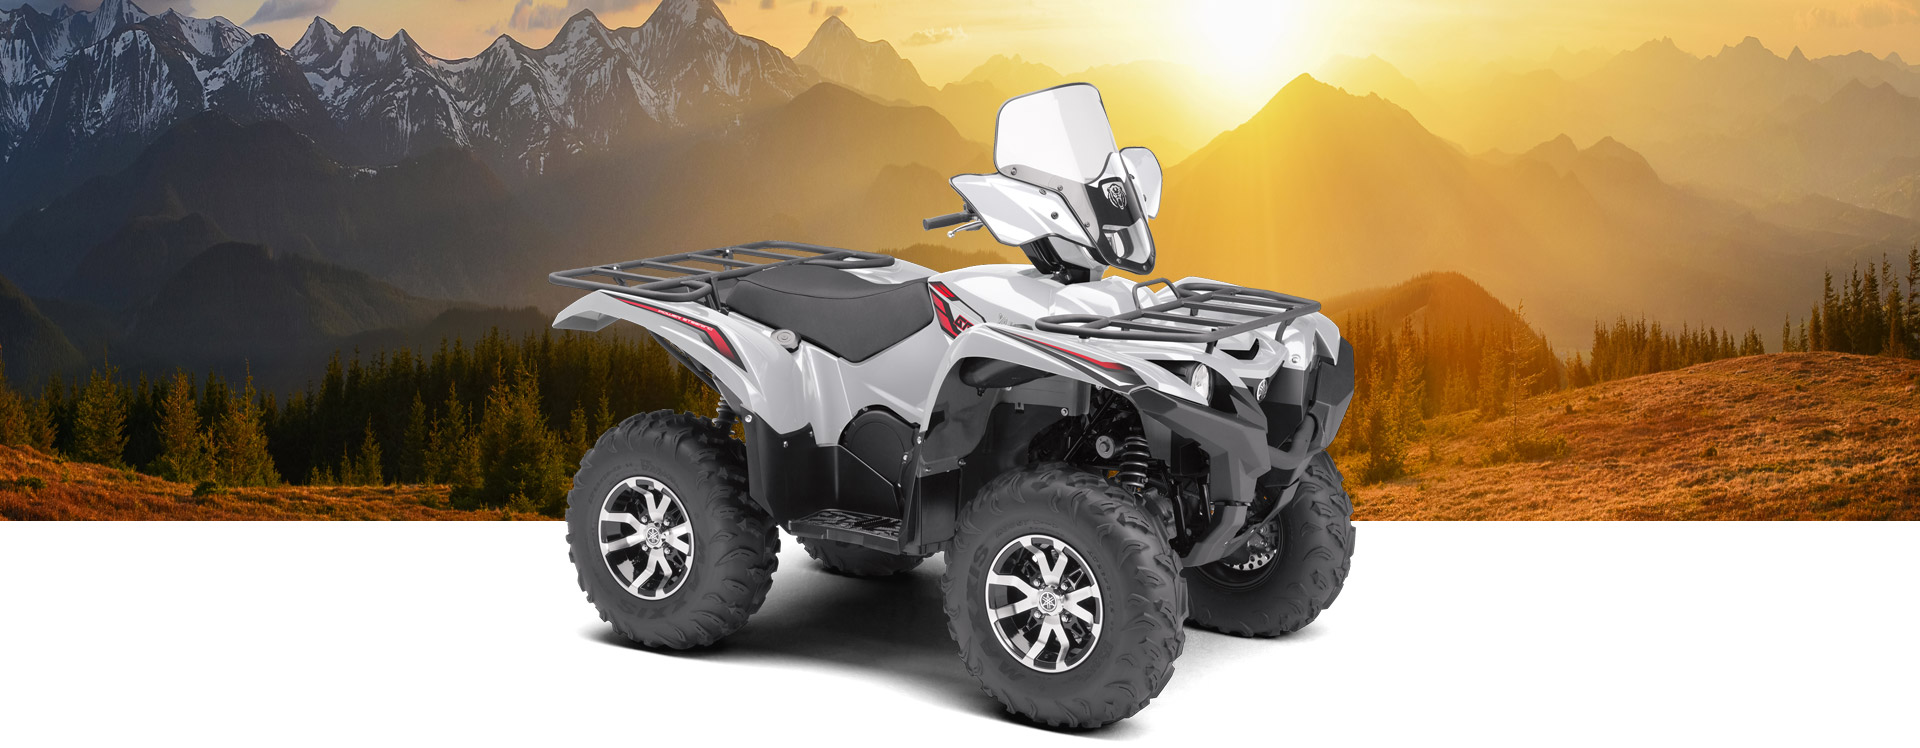 2018 Yamaha Grizzly-Eps-Le